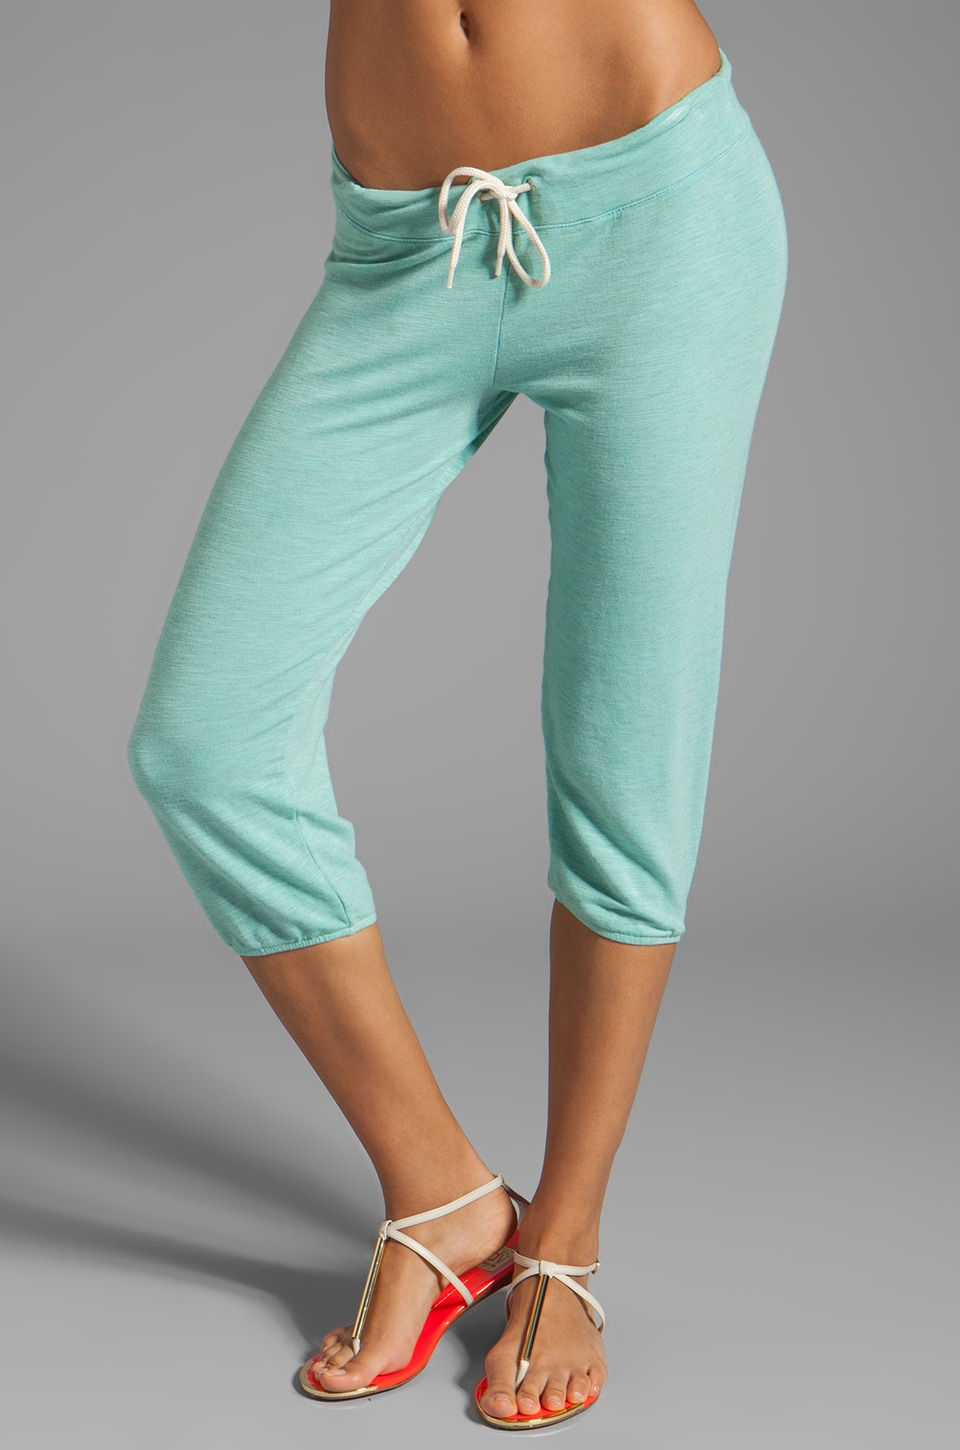 MONROW French Terry Super Soft 3/4 Vintage Sweats in Spearmint